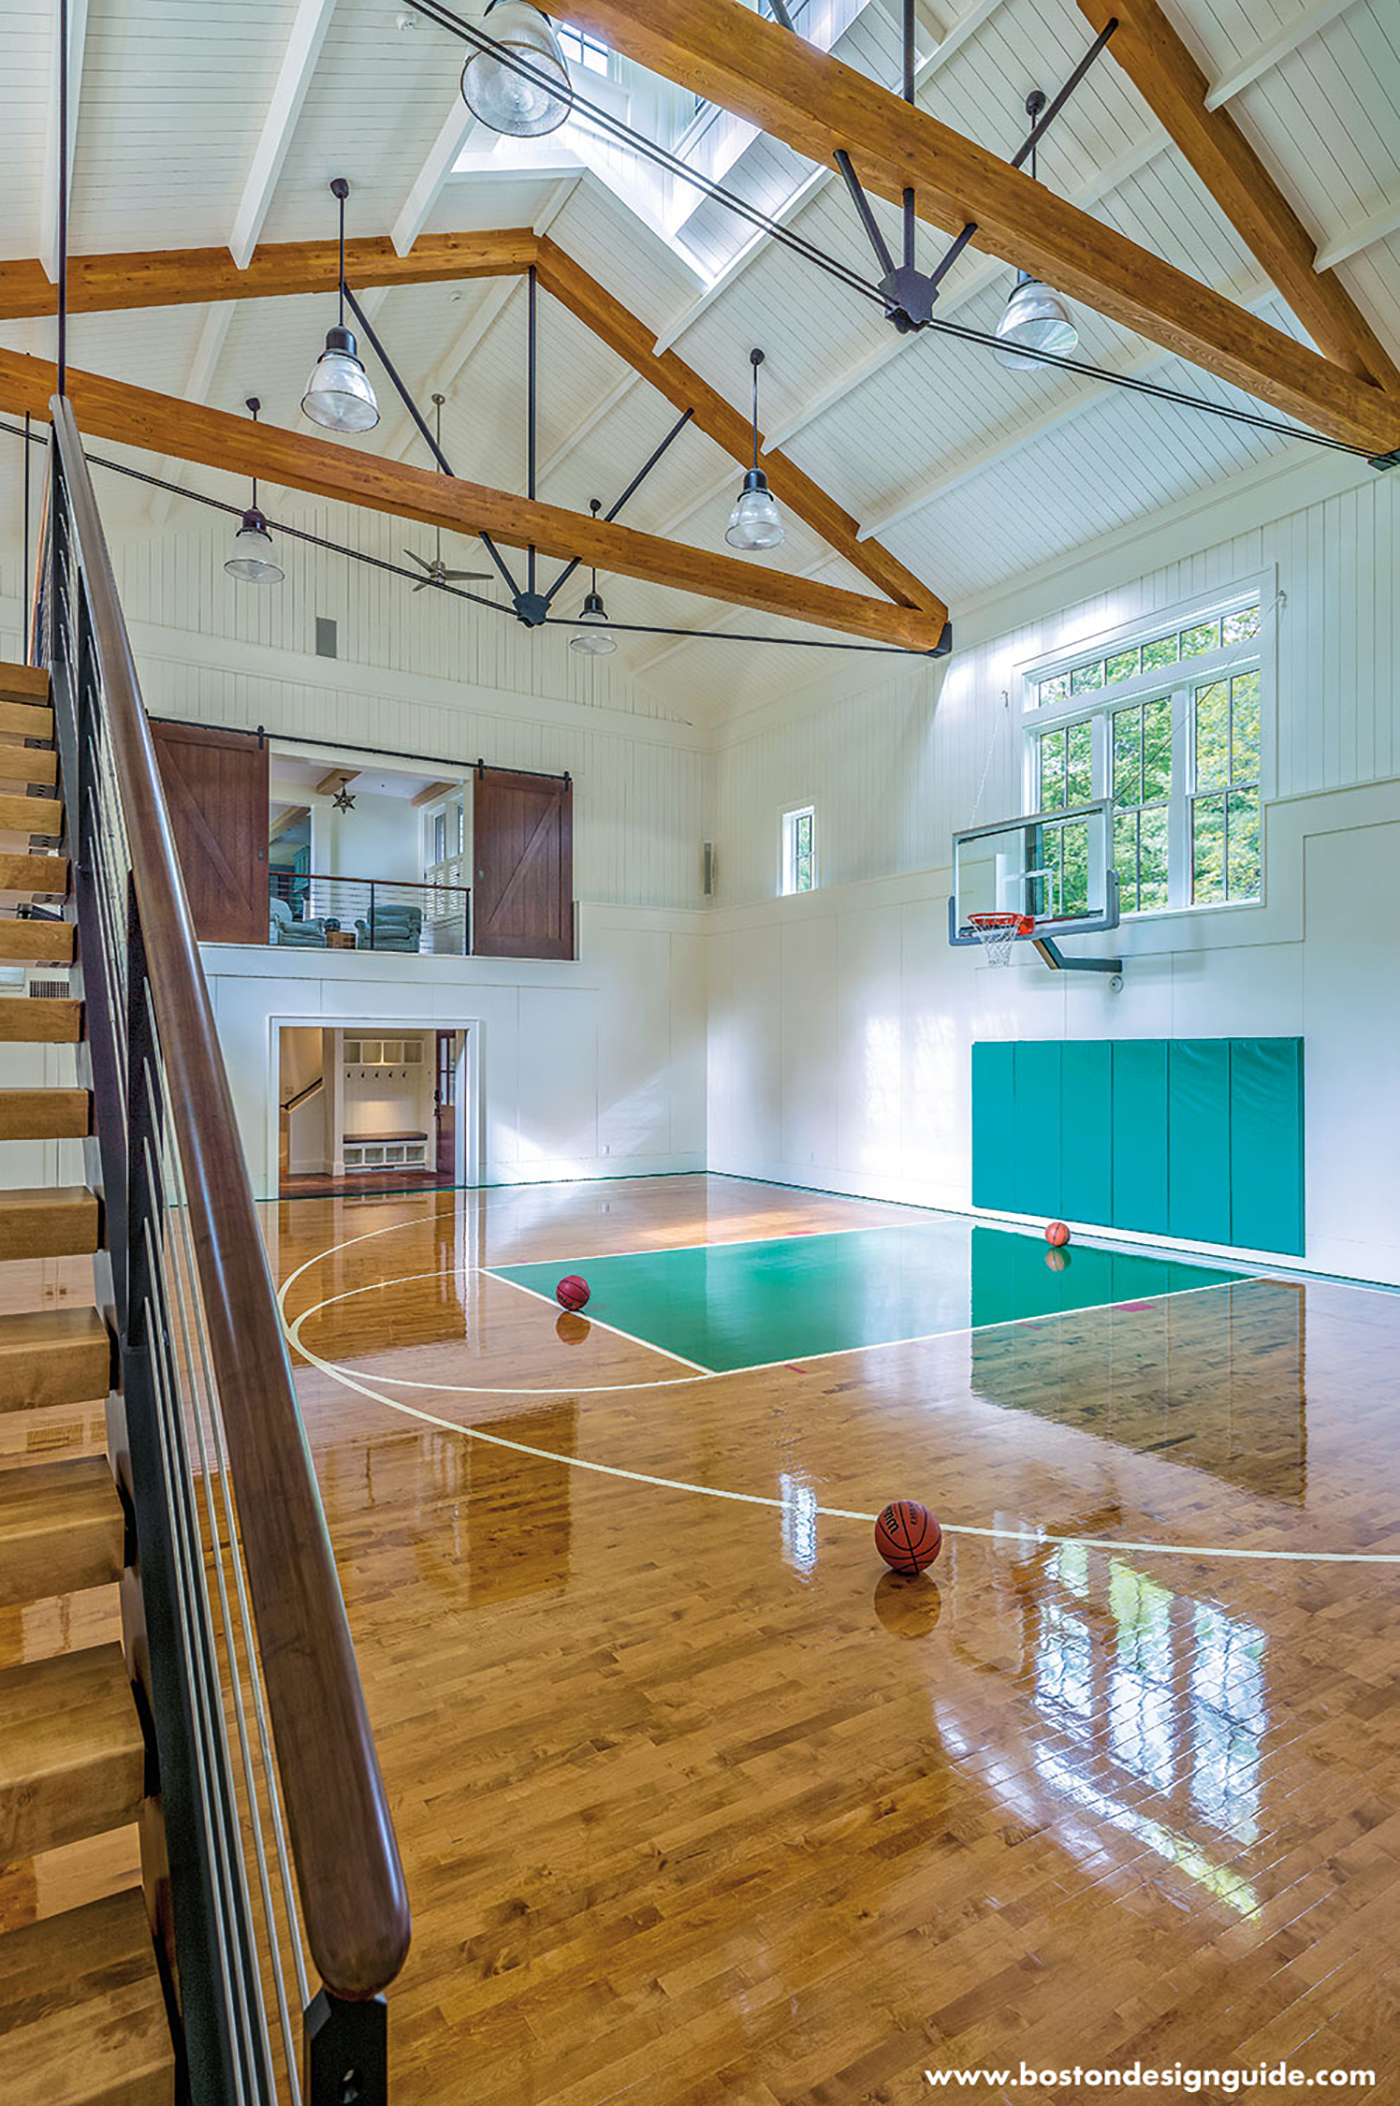 custom basketball court in barn